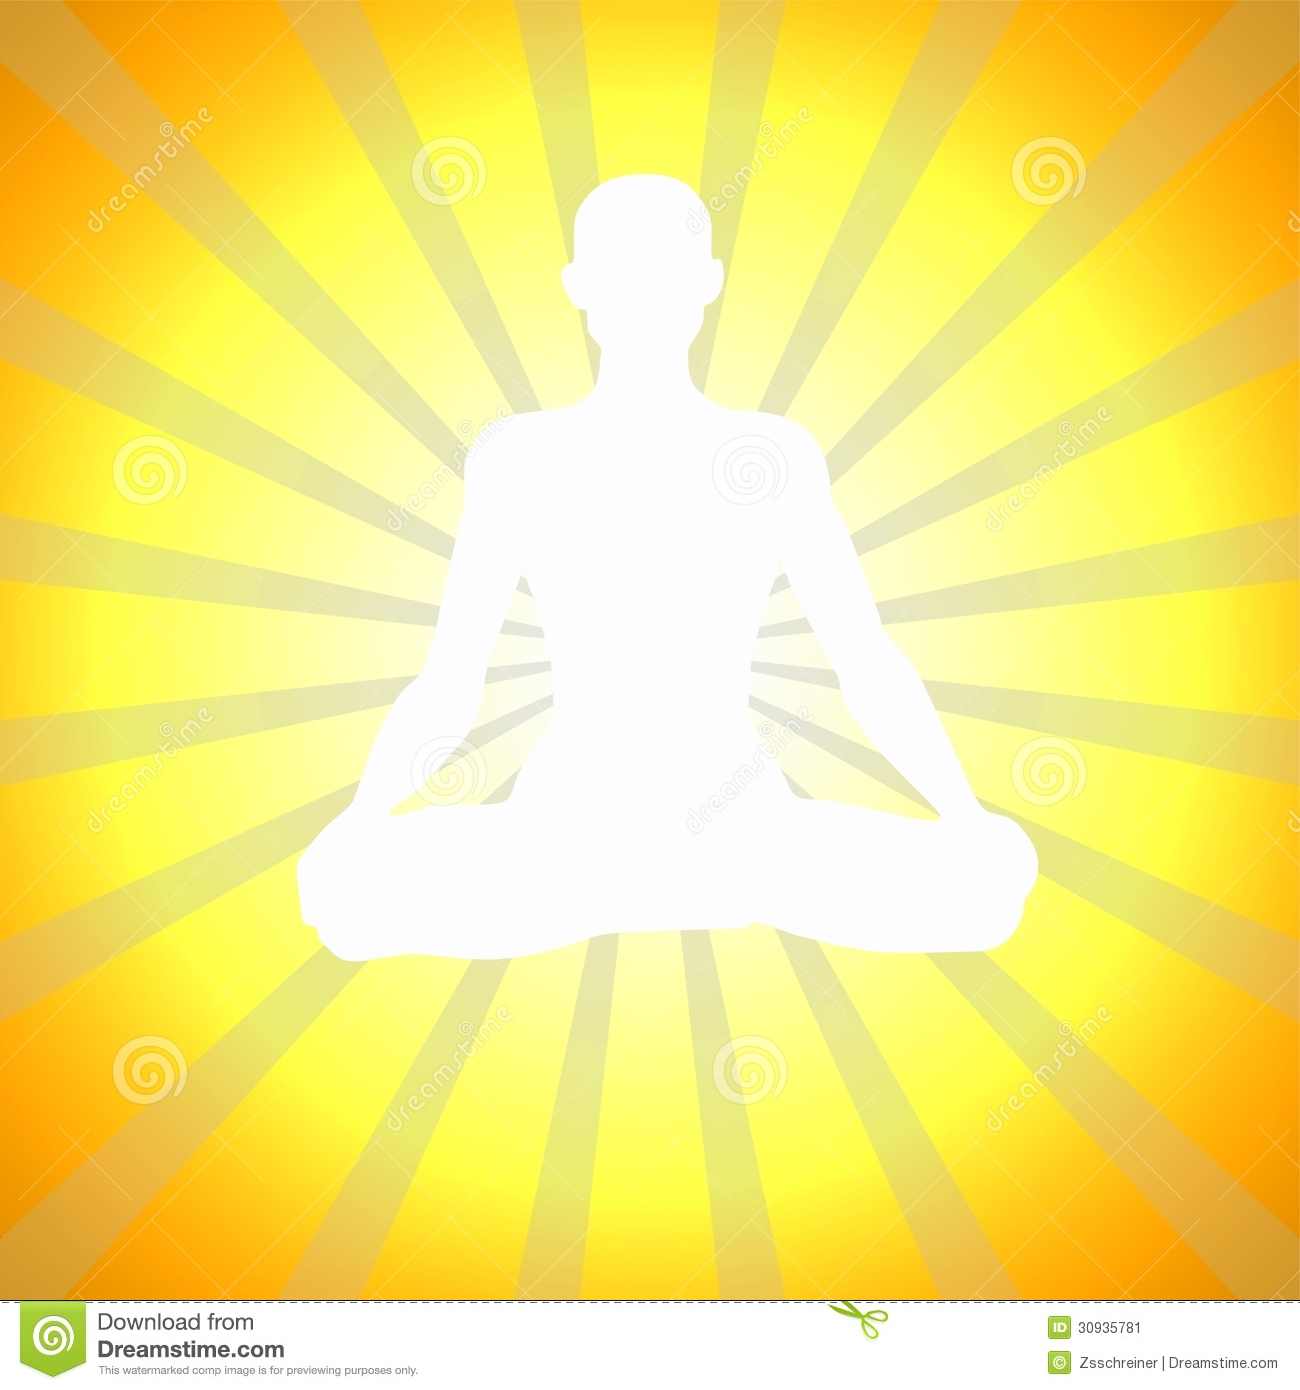 Enlightenment clipart.